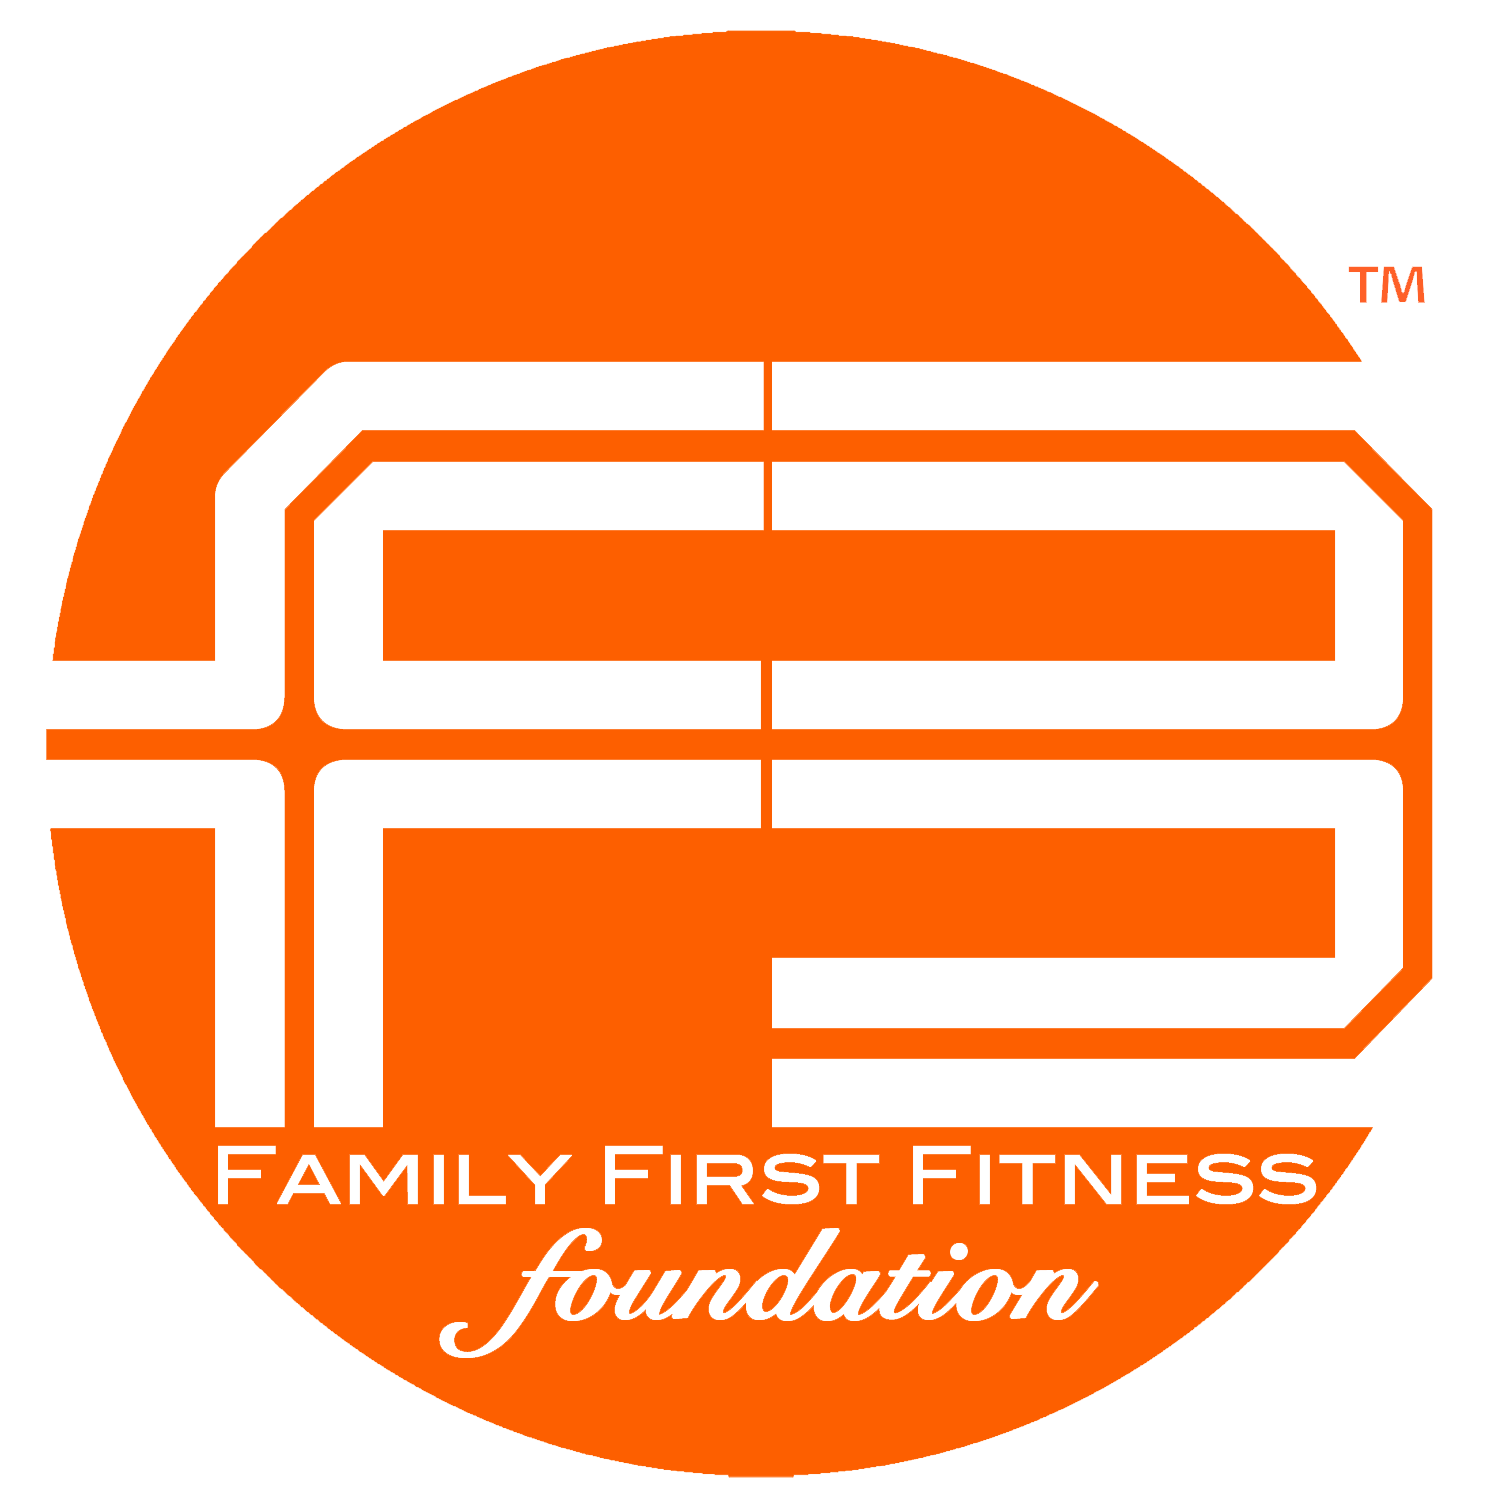 Family First Fitness Foundation